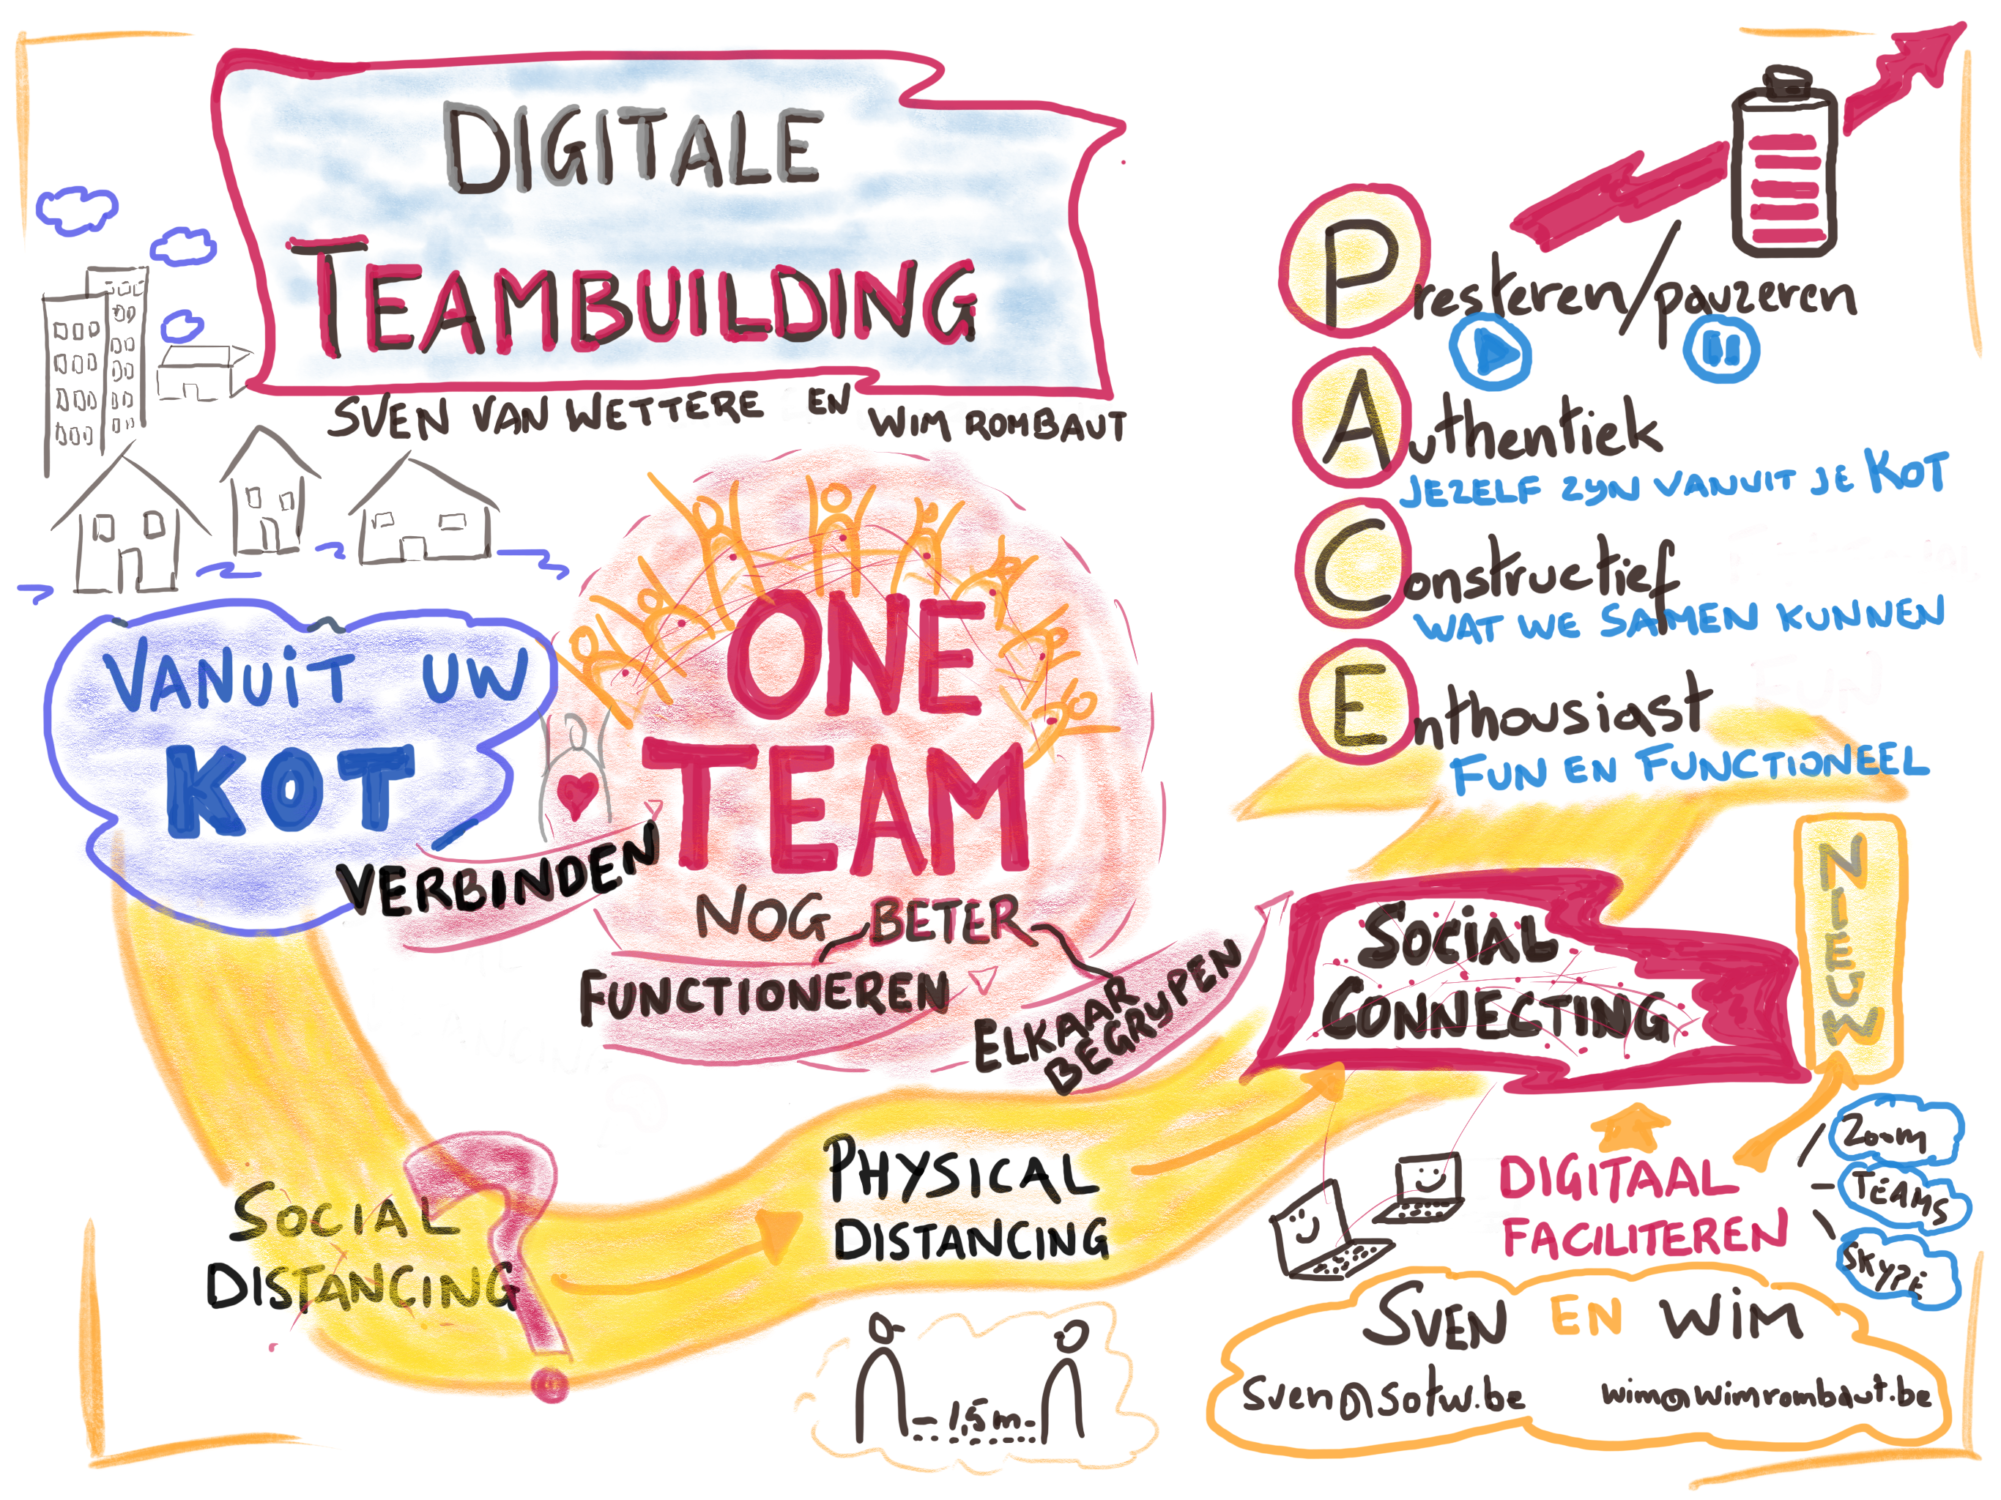 DIGITALE TEAMB